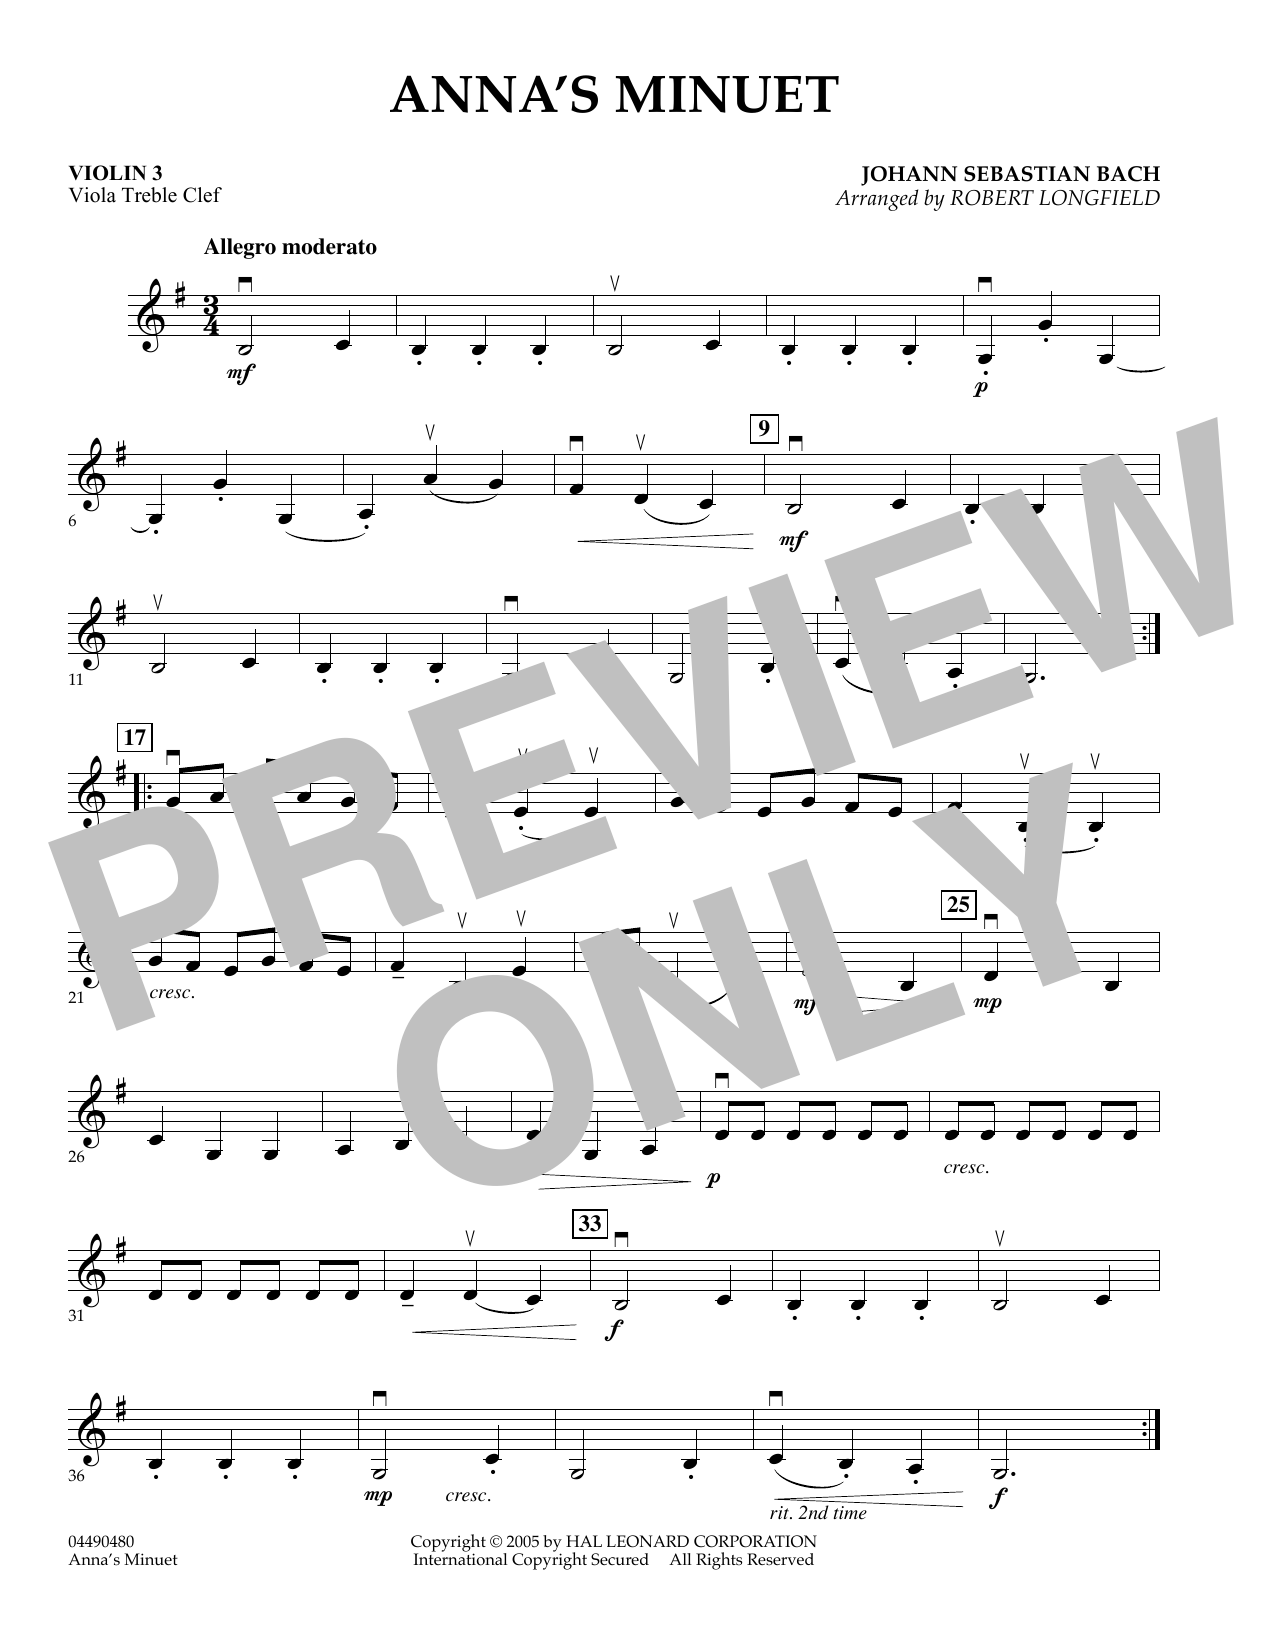 Robert Longfield Anna's Minuet - Violin 3 (Viola Treble Clef) sheet music preview music notes and score for Orchestra including 1 page(s)